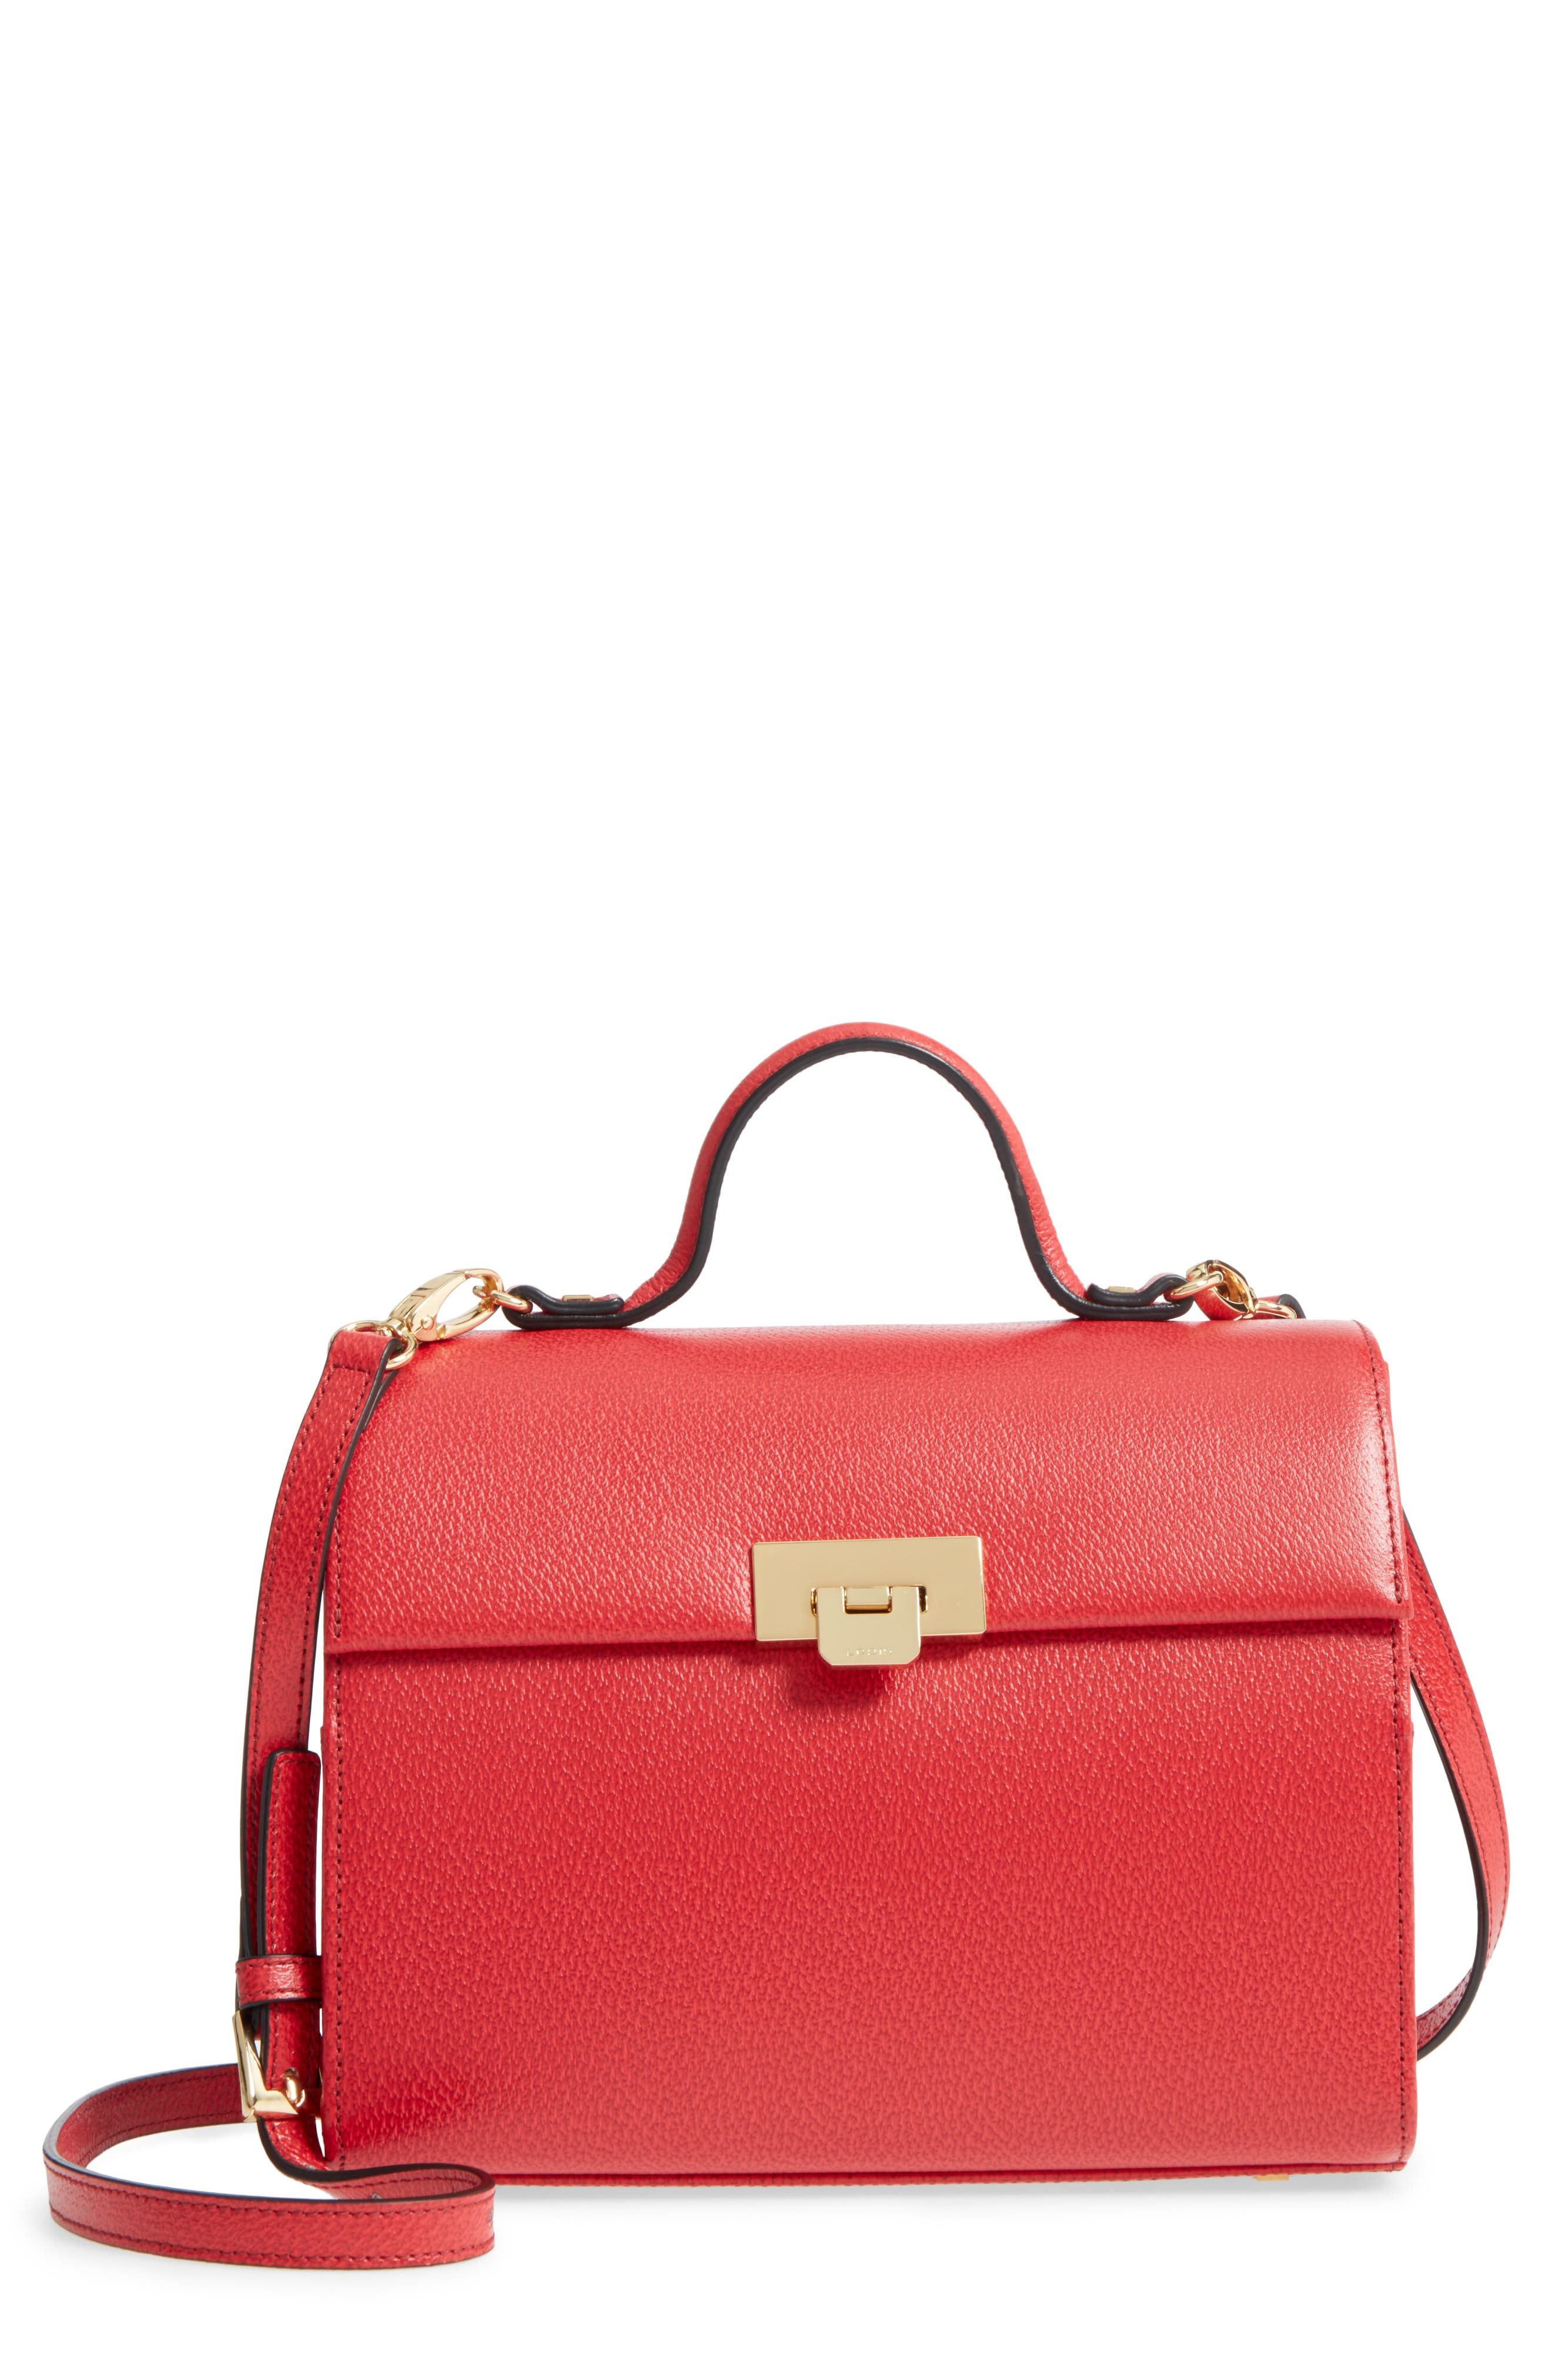 Lodis Stephanie Under Lock & Key - Medium Bree Leather Crossbody Bag